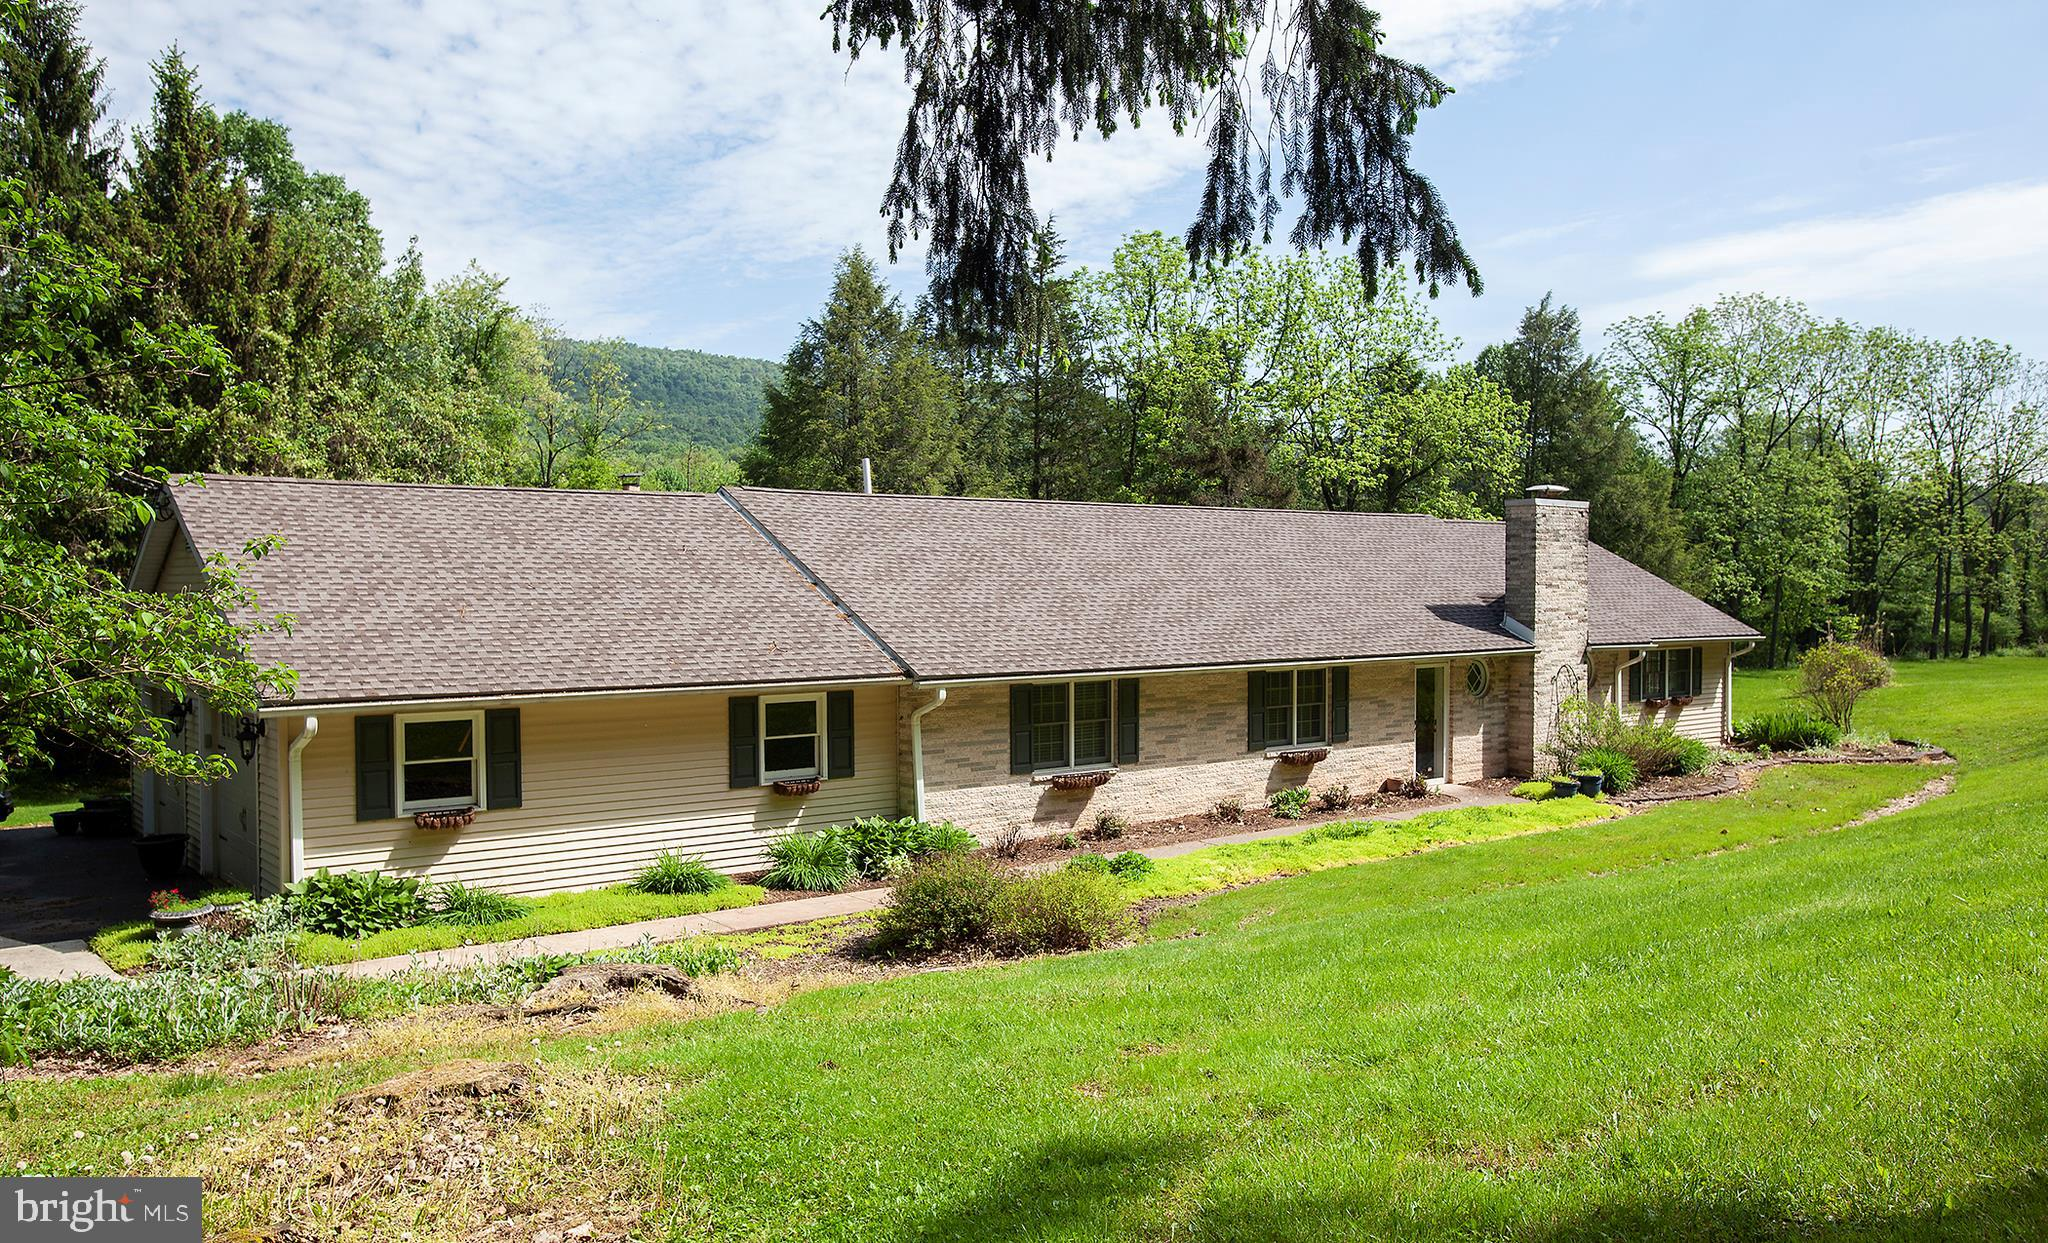 1575 NEW VALLEY ROAD, MARYSVILLE, PA 17053